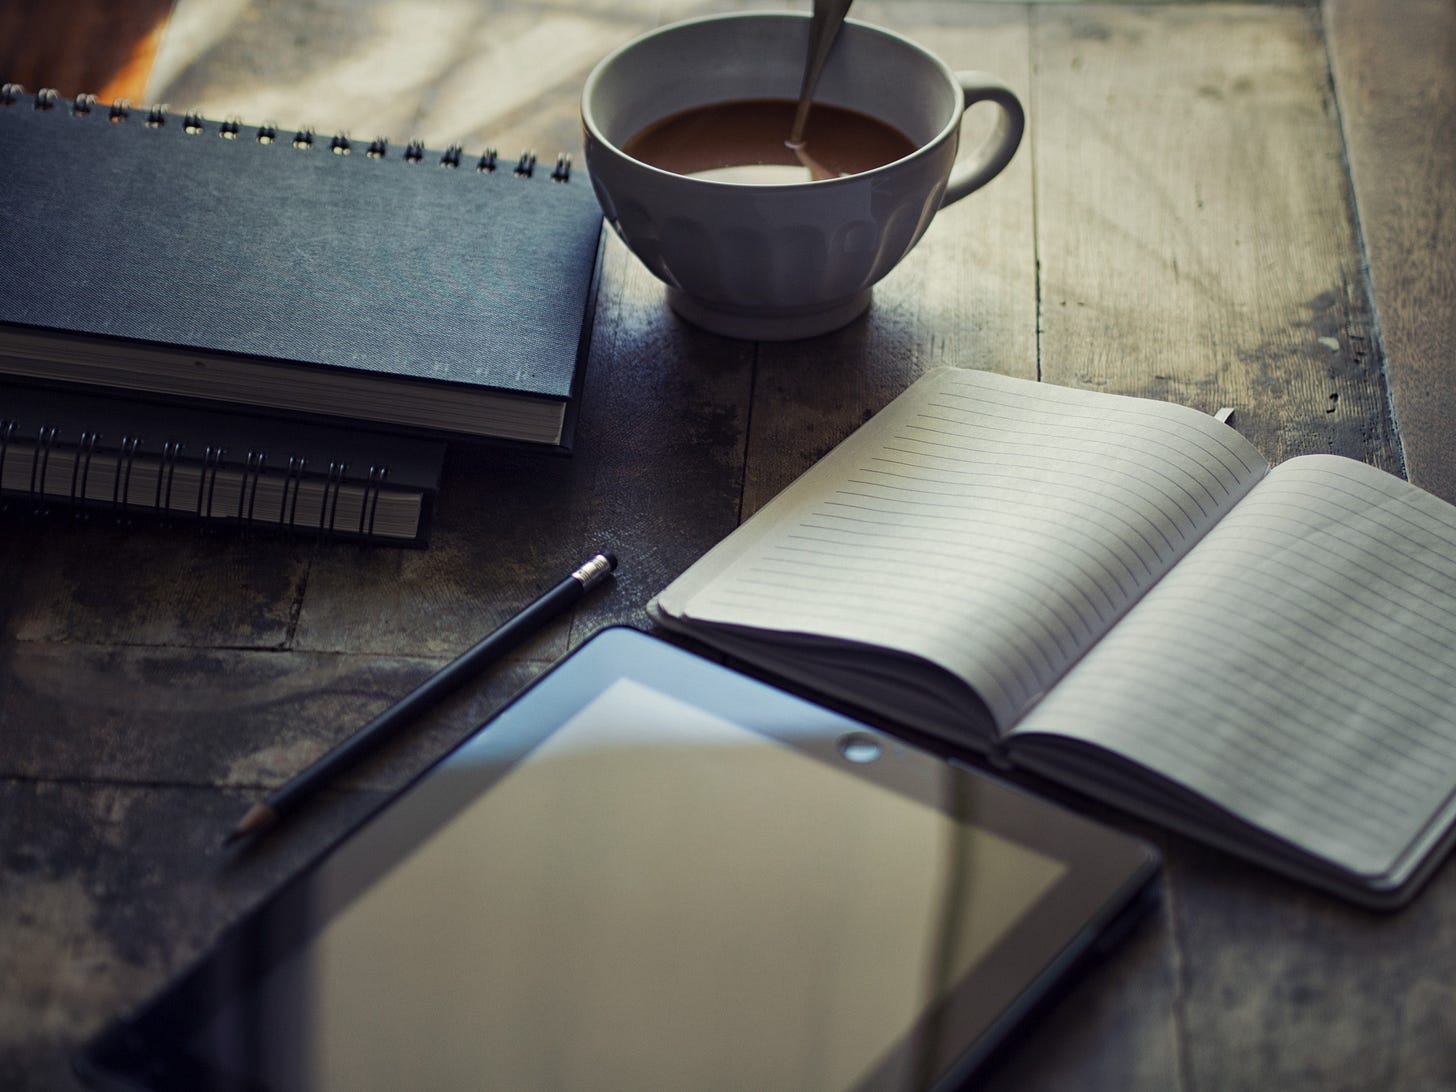 Image of a coffee cup, writing pad and tablet on a table for article by Larry G. Maguire